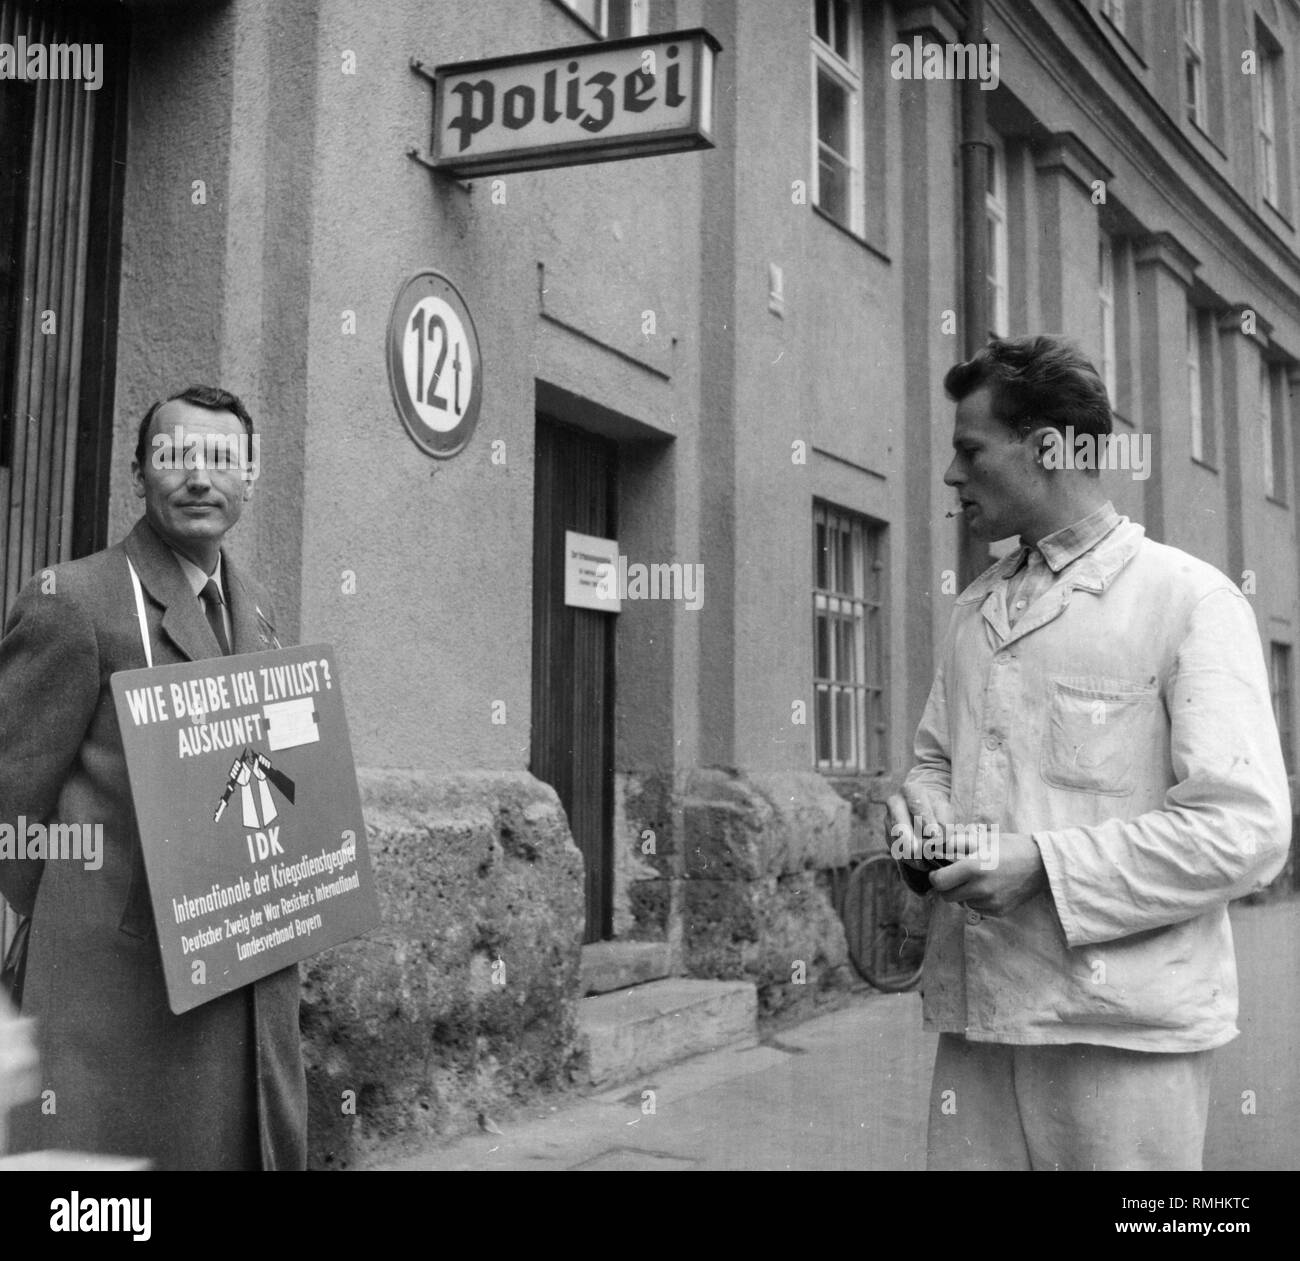 A representative of the IDK, the Internationale der Kriegsdienstverweigerer (Conscientious Objectors' International) stands with his poster in front of the registration office of the Bundeswehr in the Ettstrasse in Munich. Stock Photo